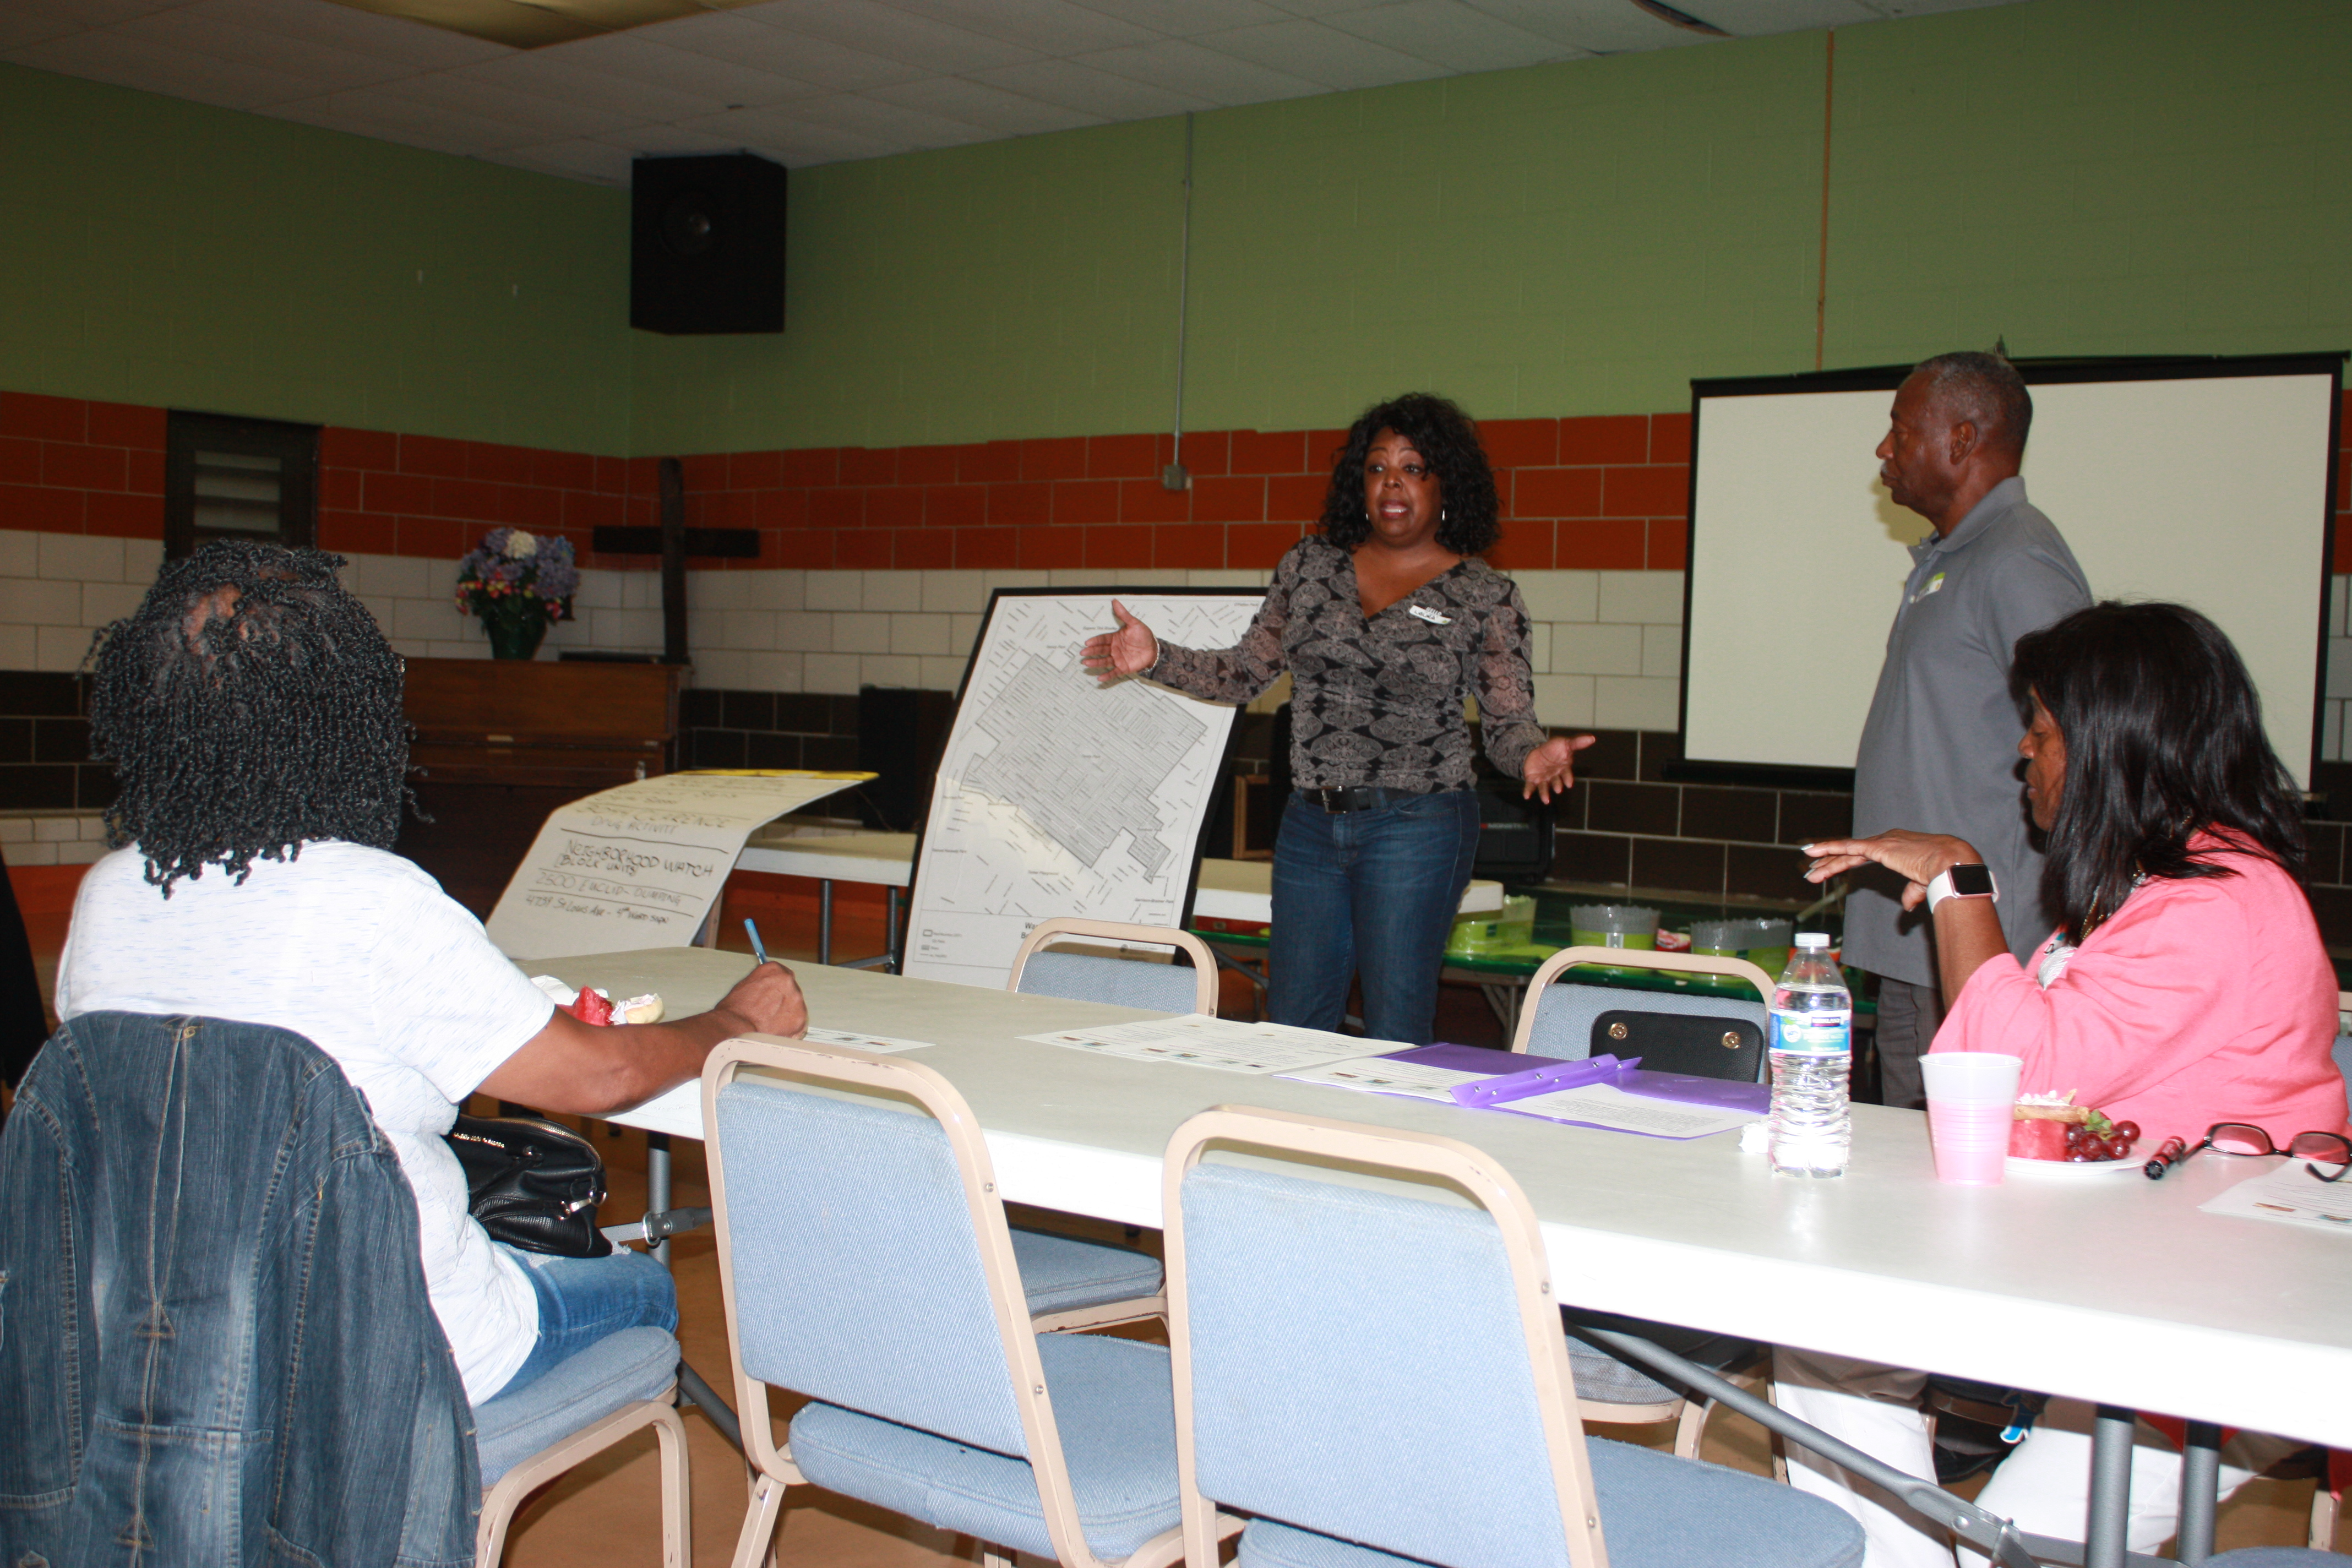 4th Ward has robust development, investment plans